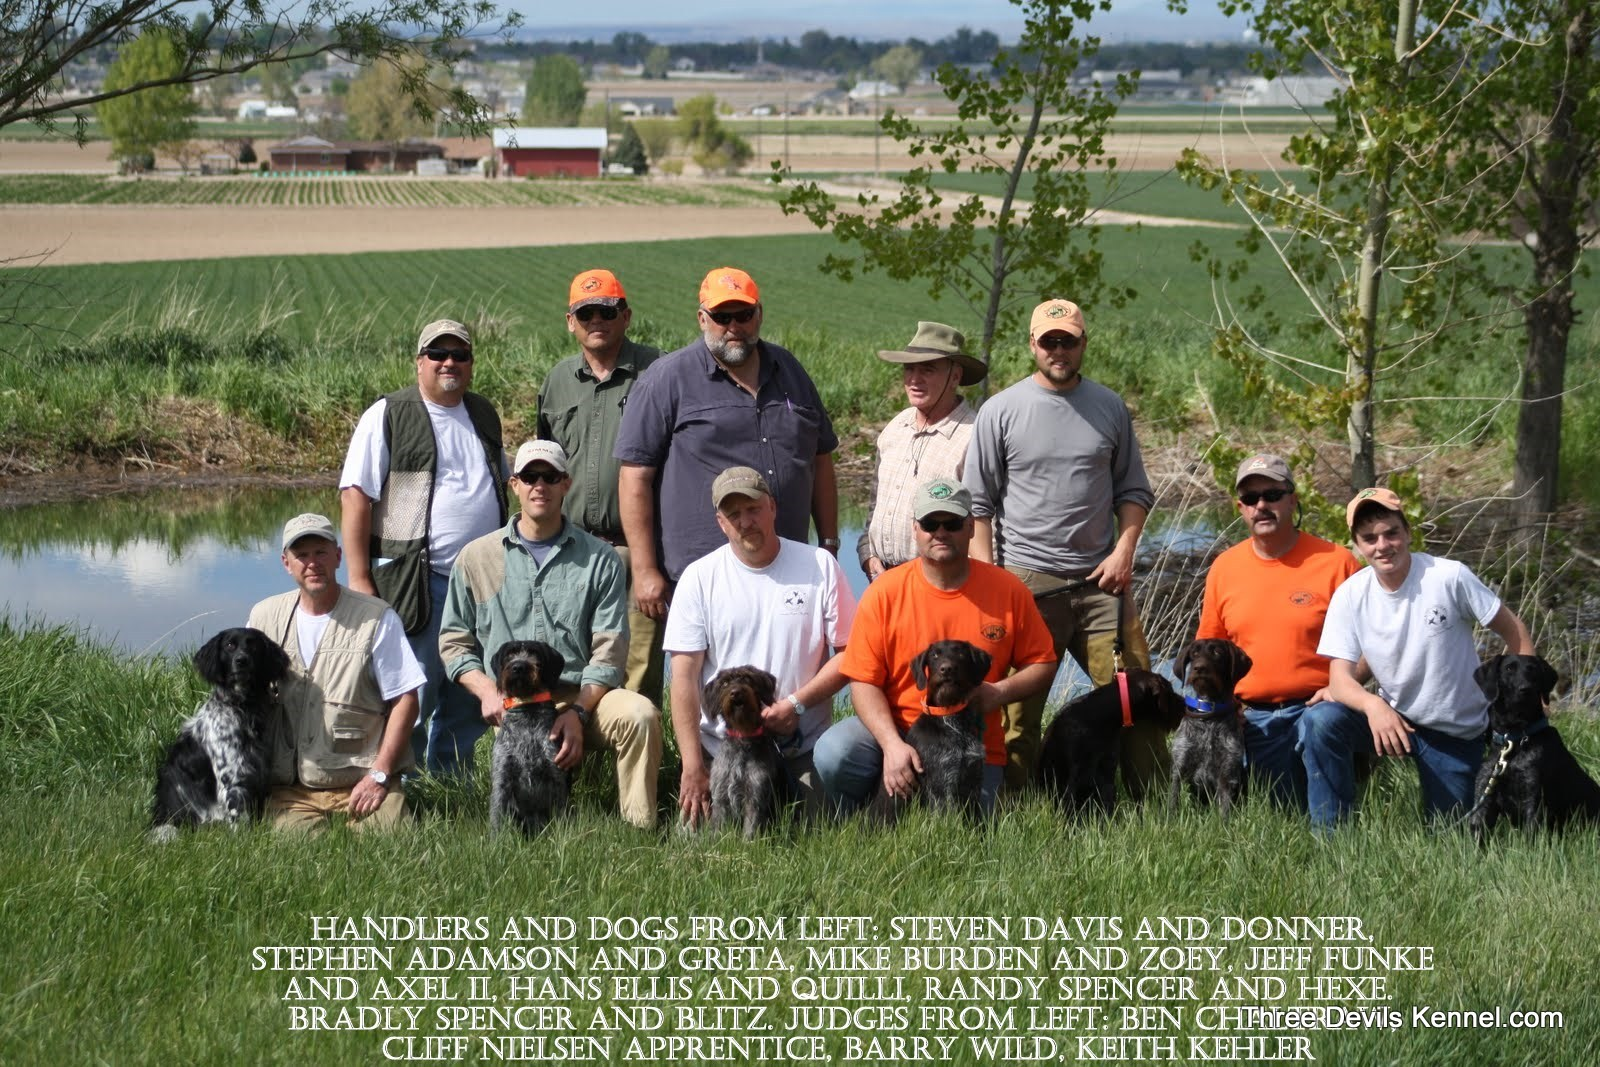 18-Handlers and Judges SRVGDC 5-8-2010.jpg